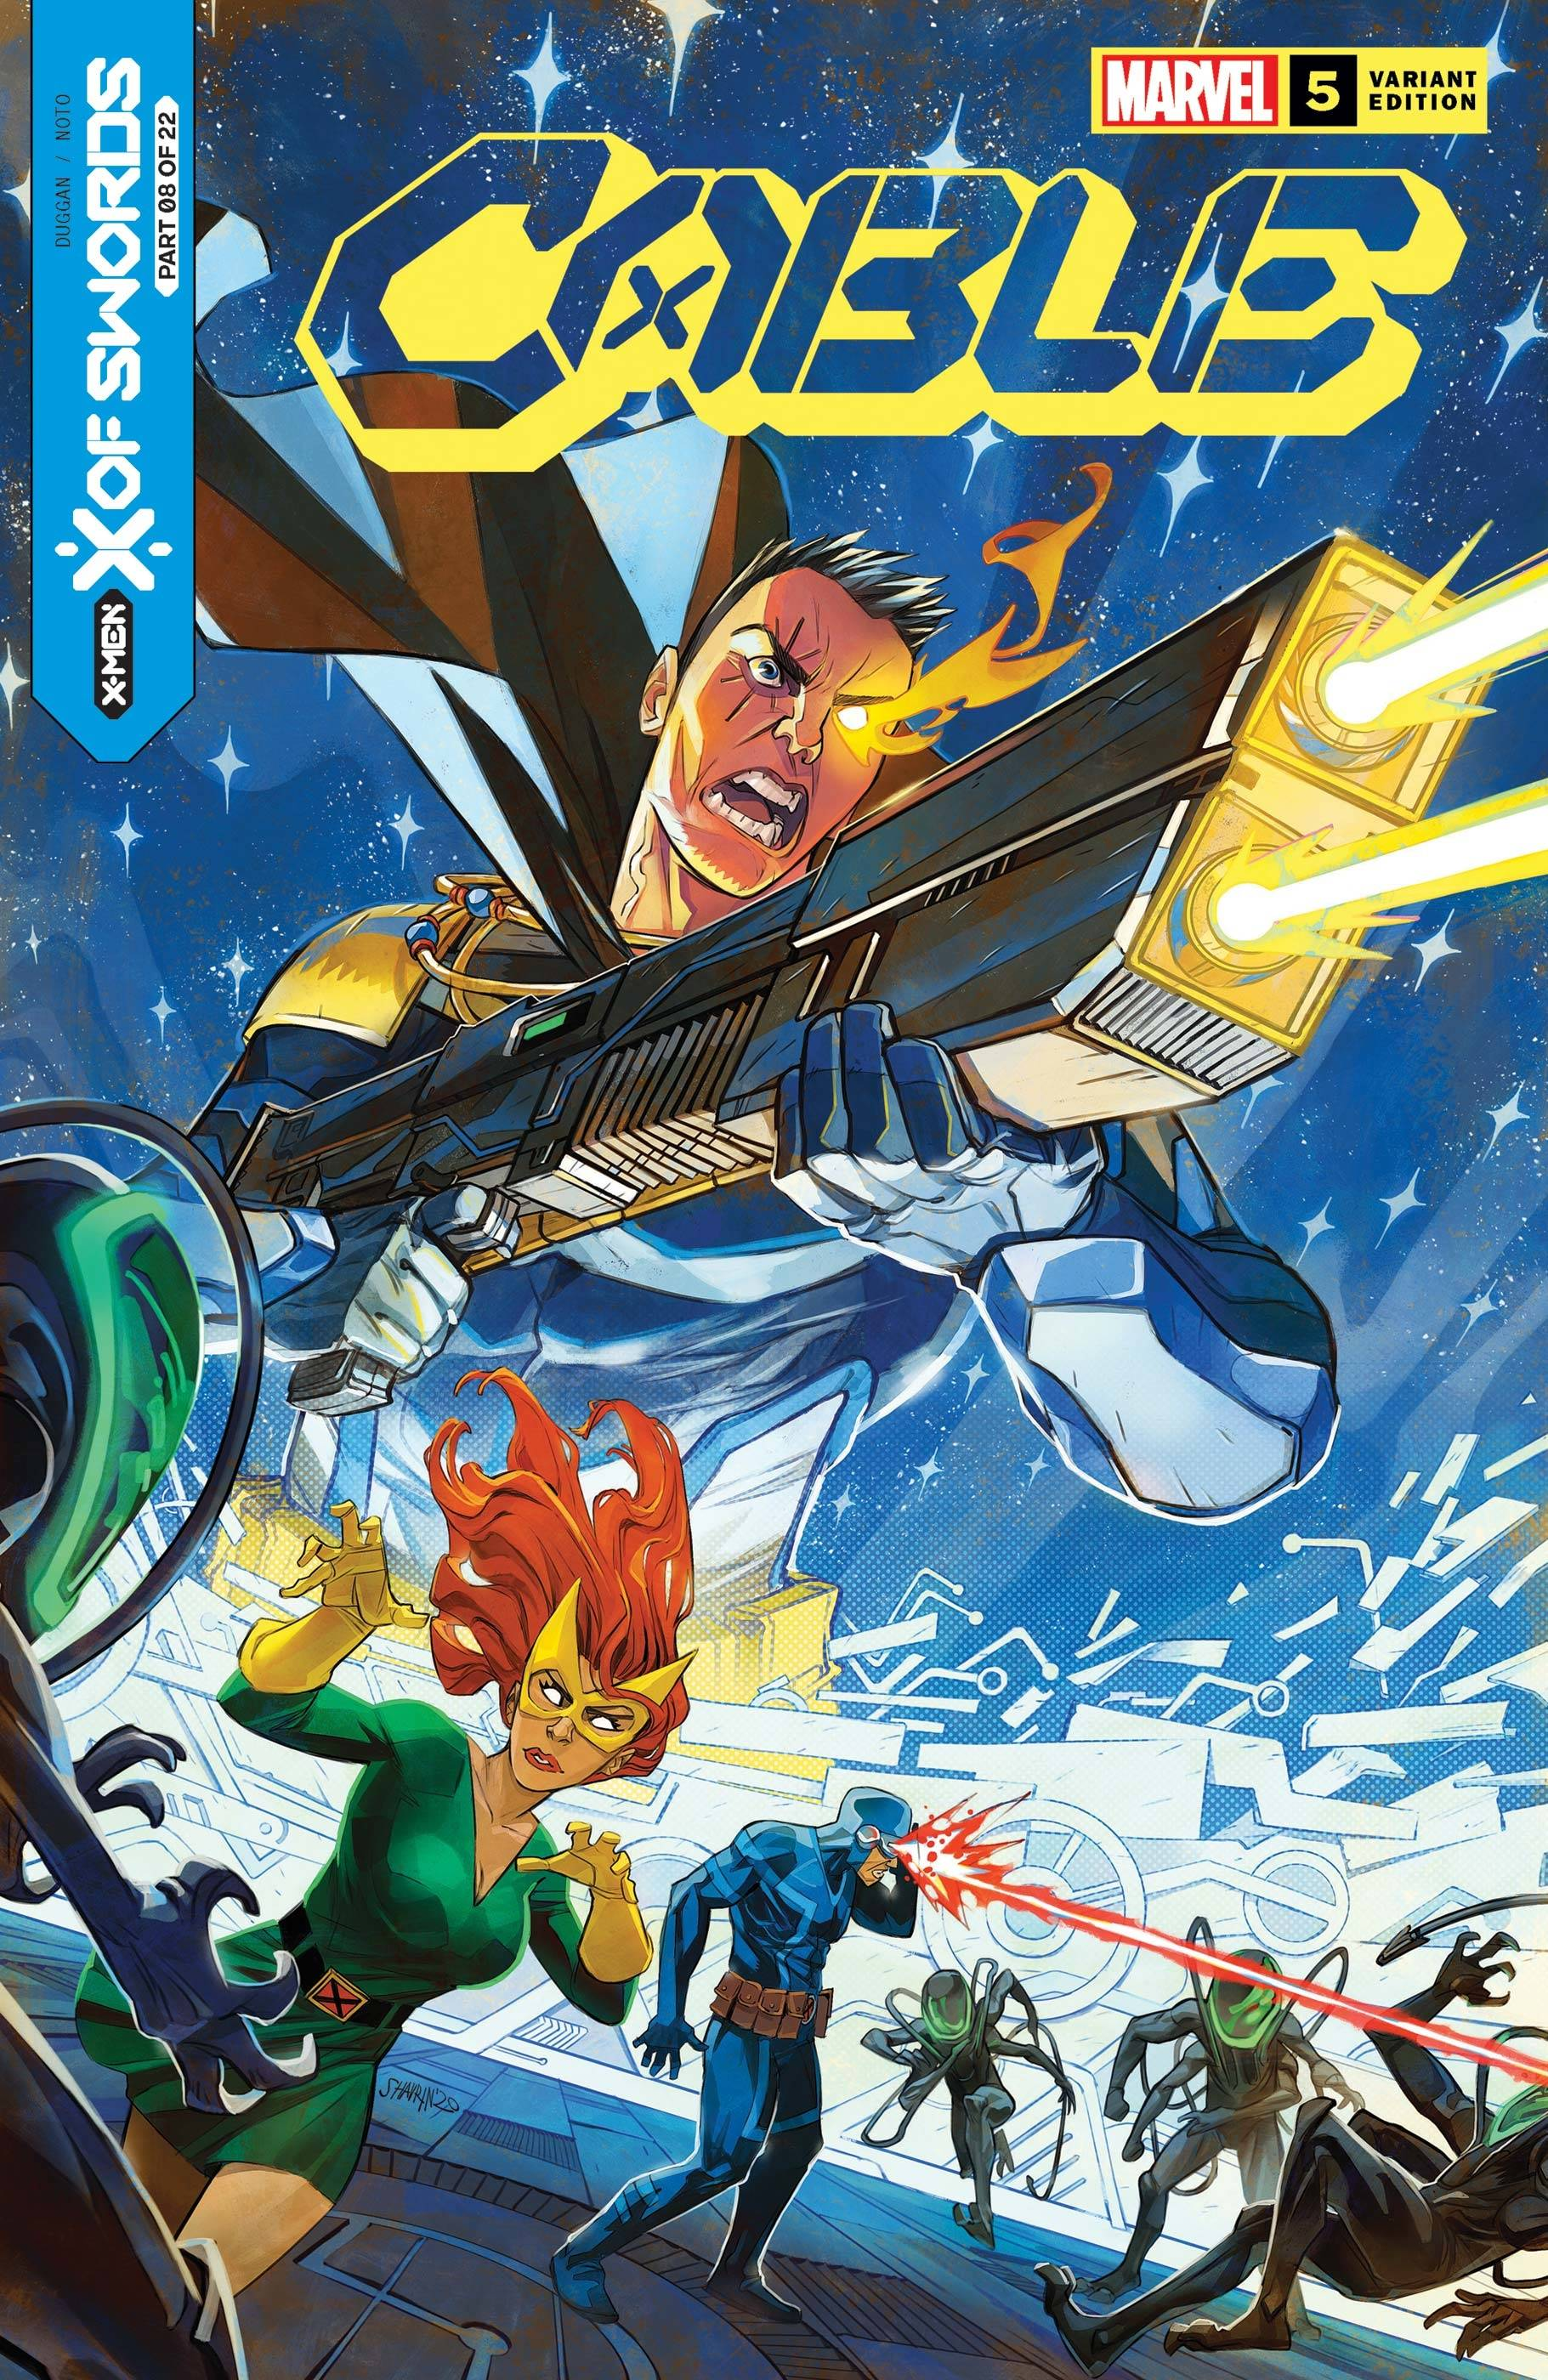 Cable Vol 4 5 Shavrin Variant.jpg